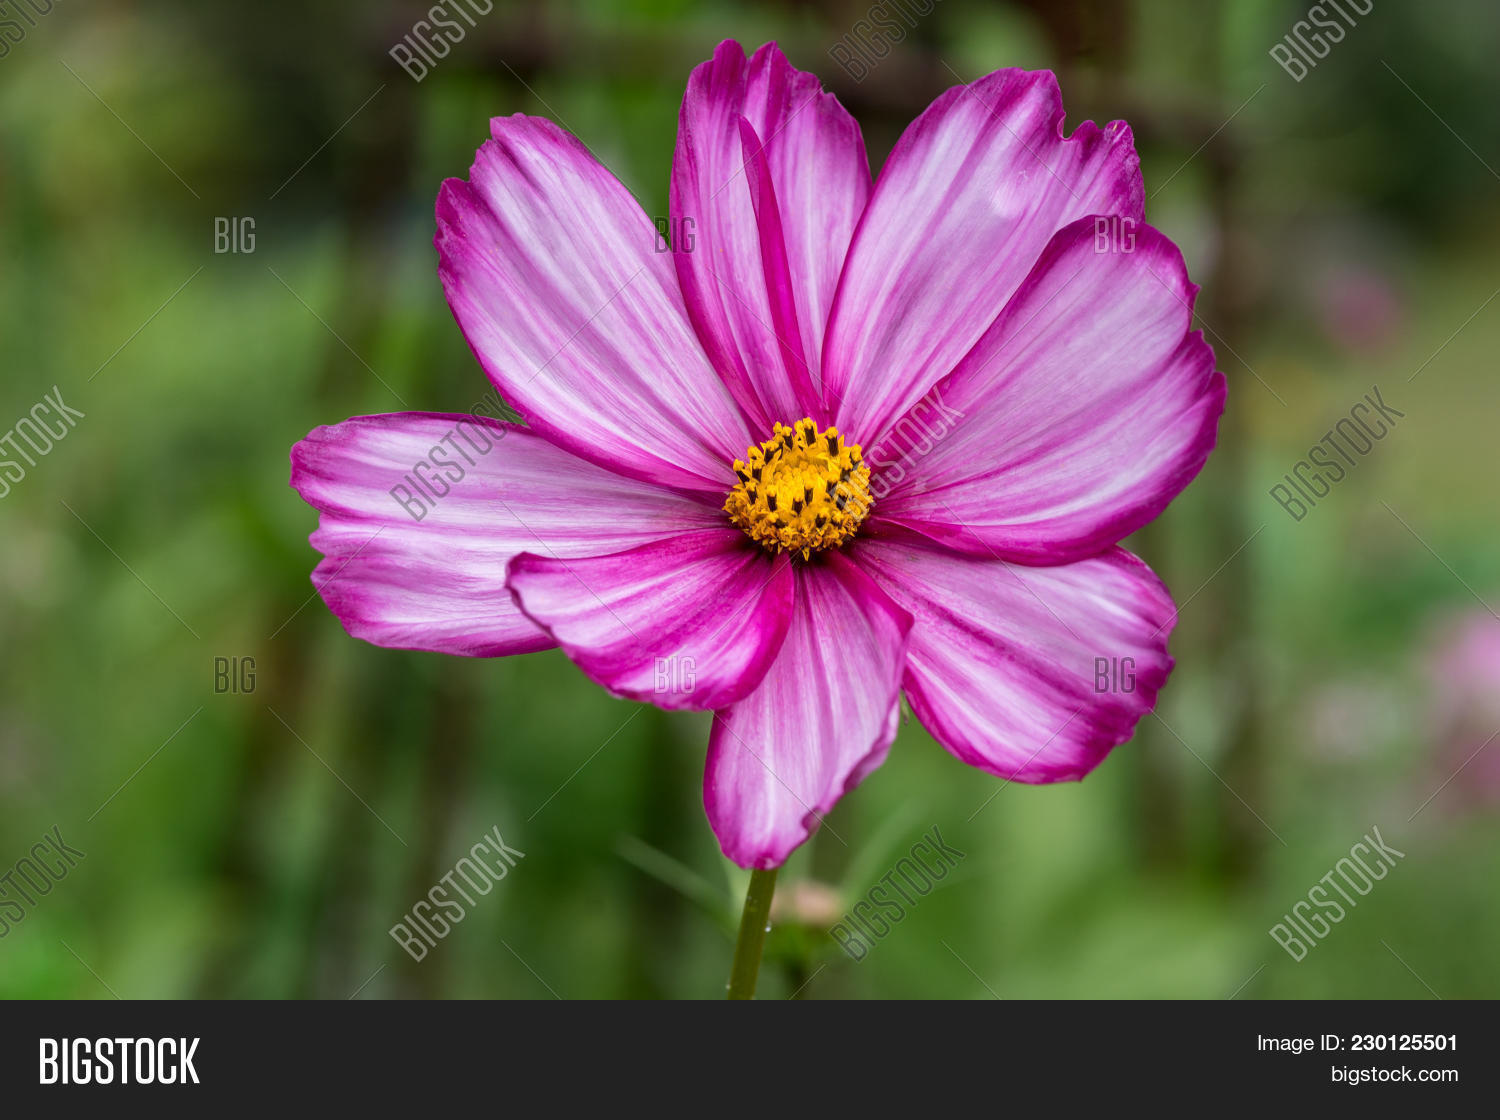 Closeup beautiful image photo free trial bigstock closeup of a beautiful sonata flower with pink and white striped petals and yellow center button mightylinksfo